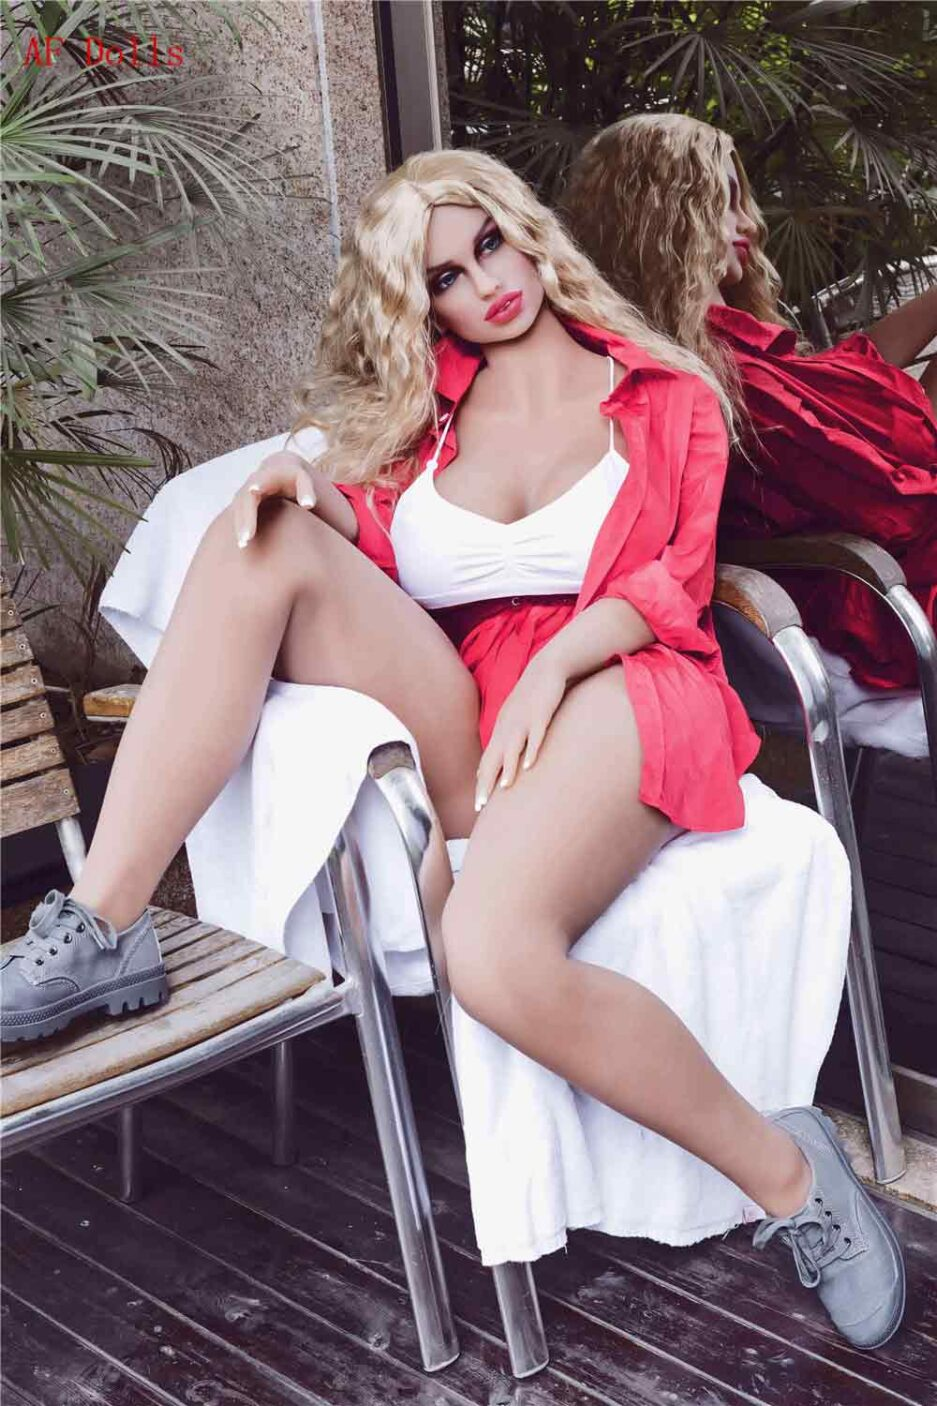 Big breasted sex doll sitting on a chair